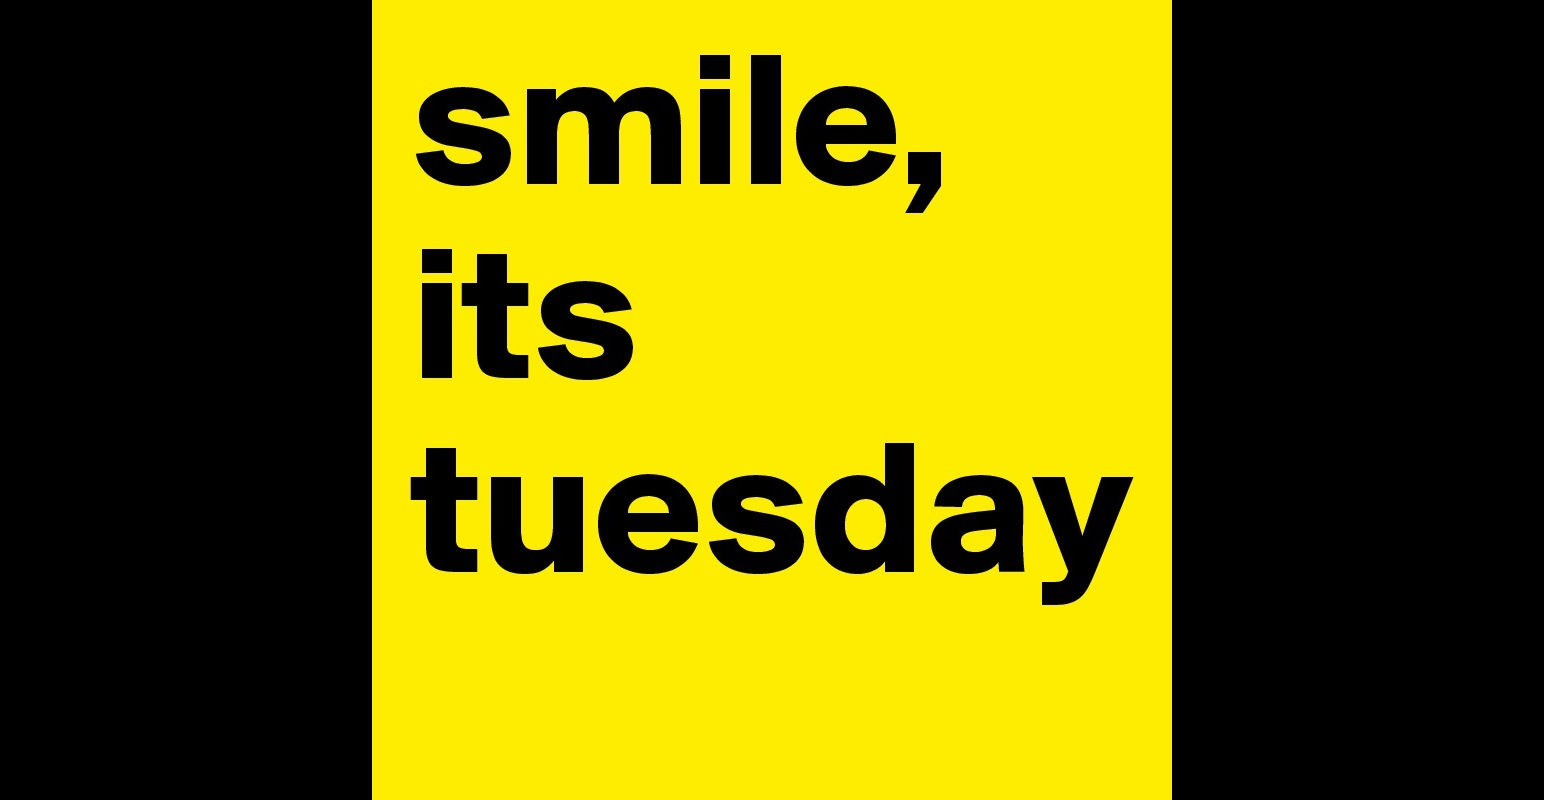 Its Tuesday smile, its tues...